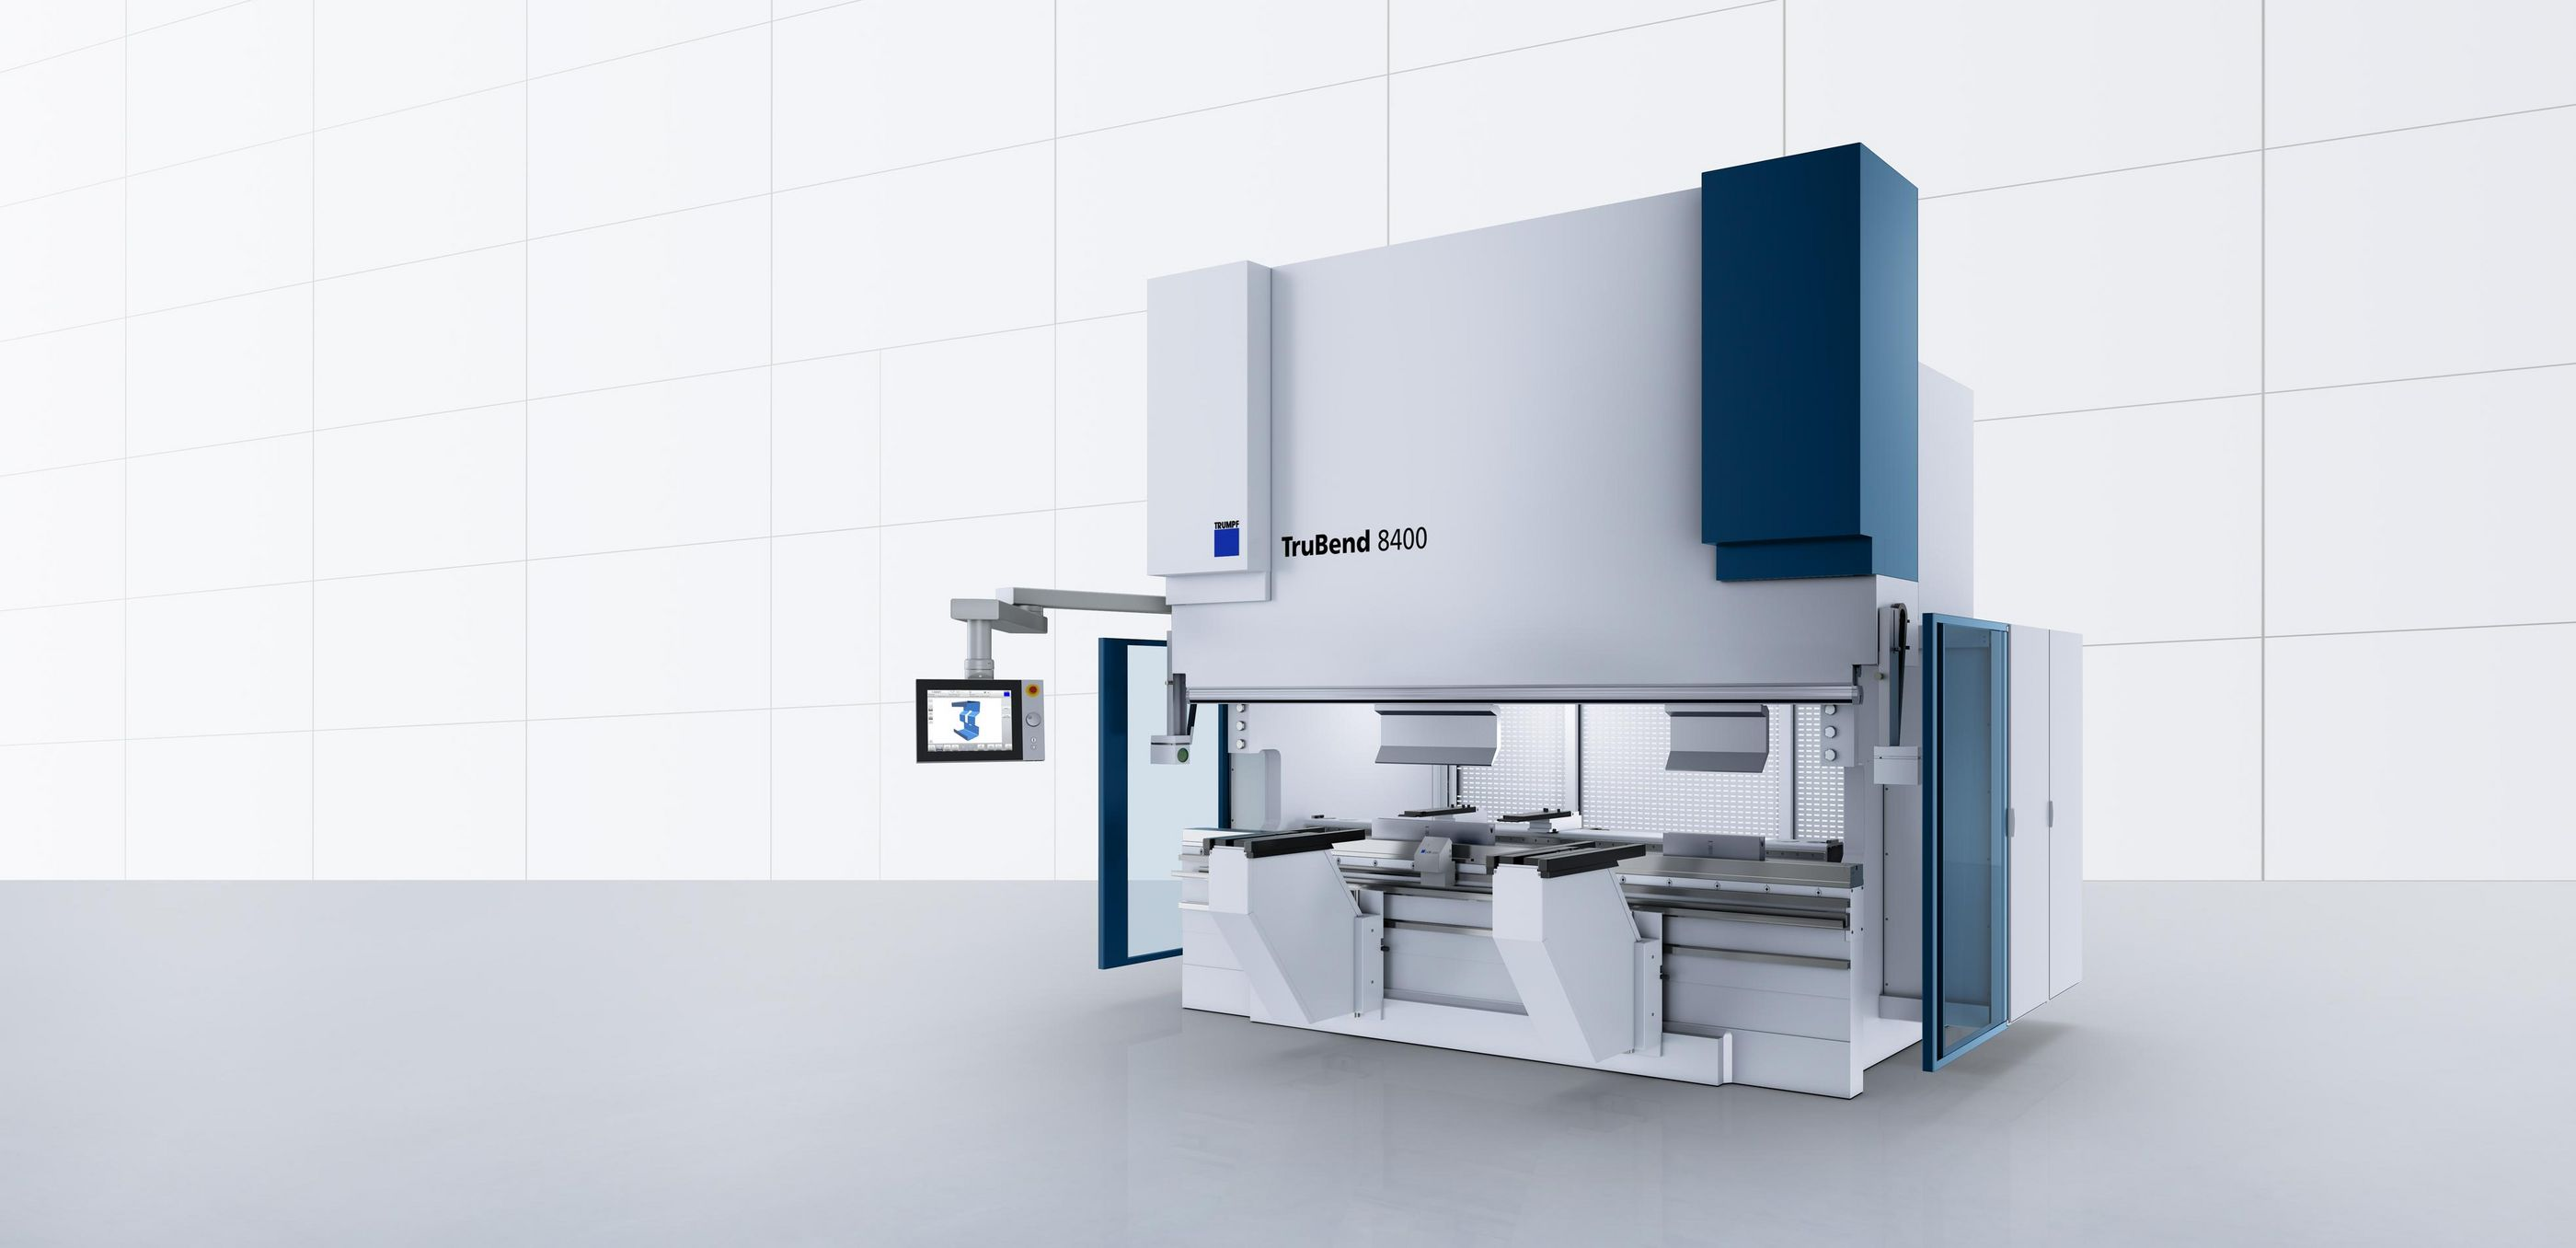 TruBend Series 8000, a flexible large-format machine